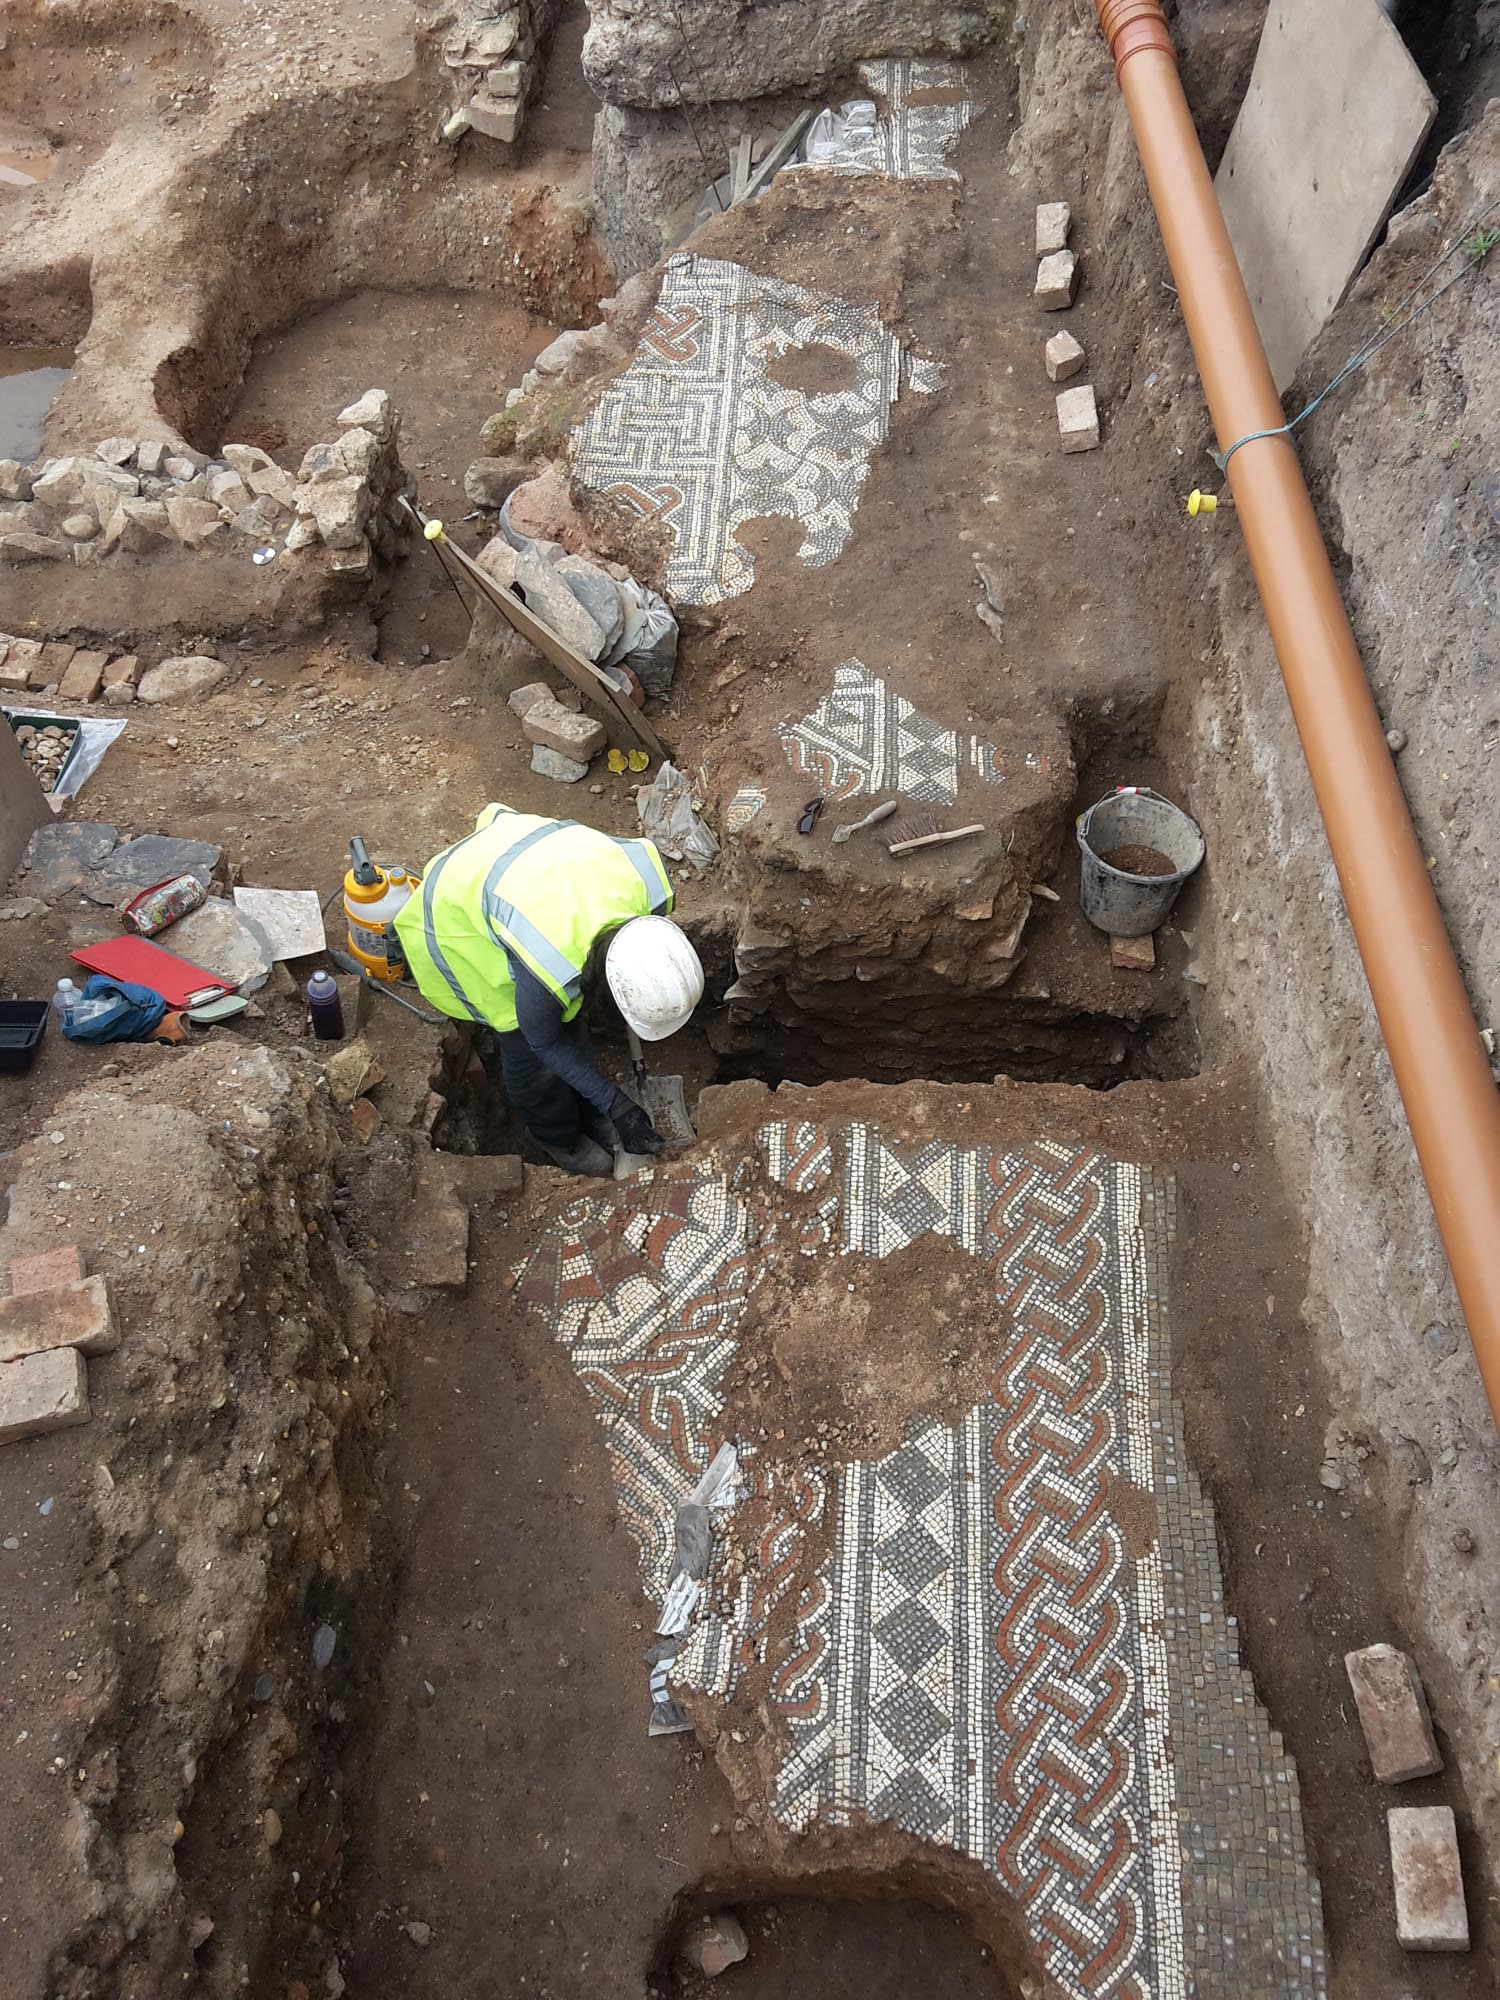 Part of an intricately decorated Roman mosaic is excavated near Vaughan Way and Highcross Street - University of Leicester Archaeological Services